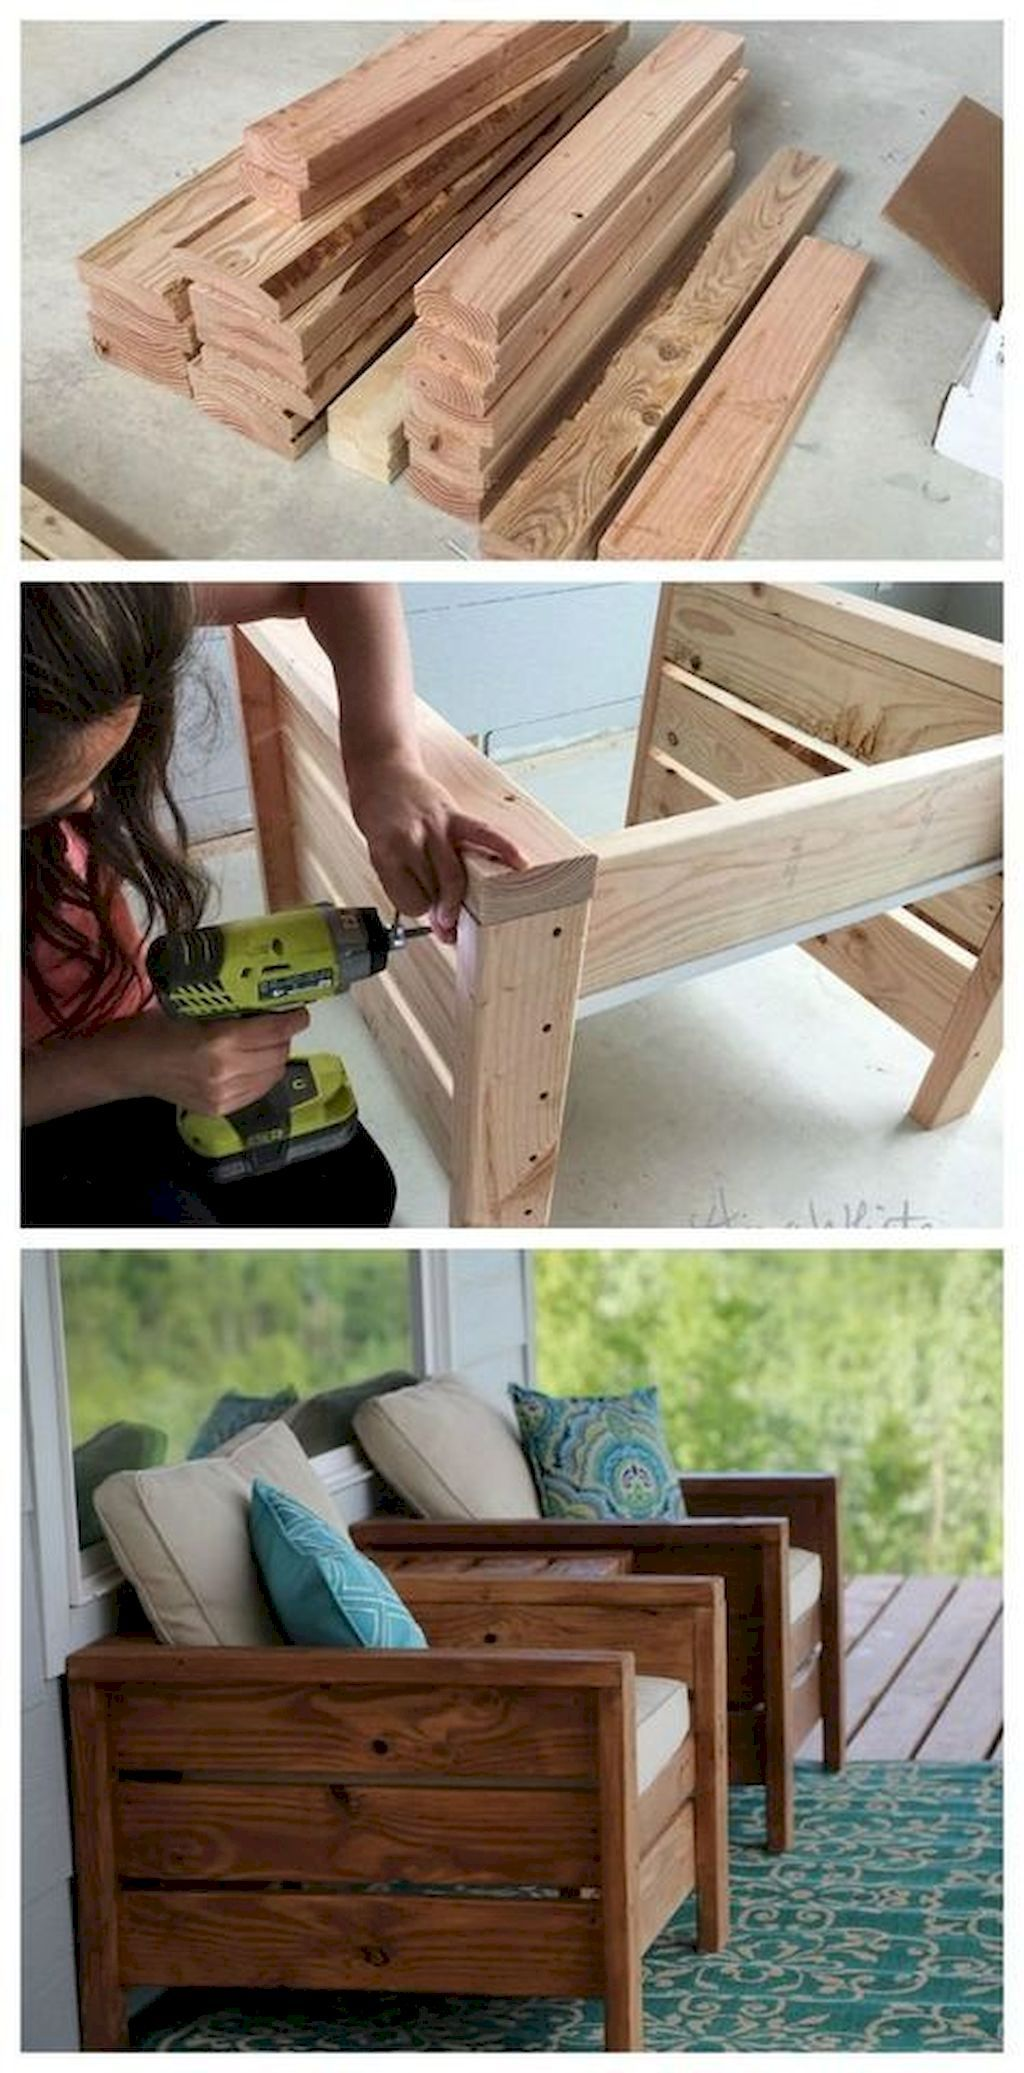 Pin By Kristen Dutra On The Humble Abode Woodworking